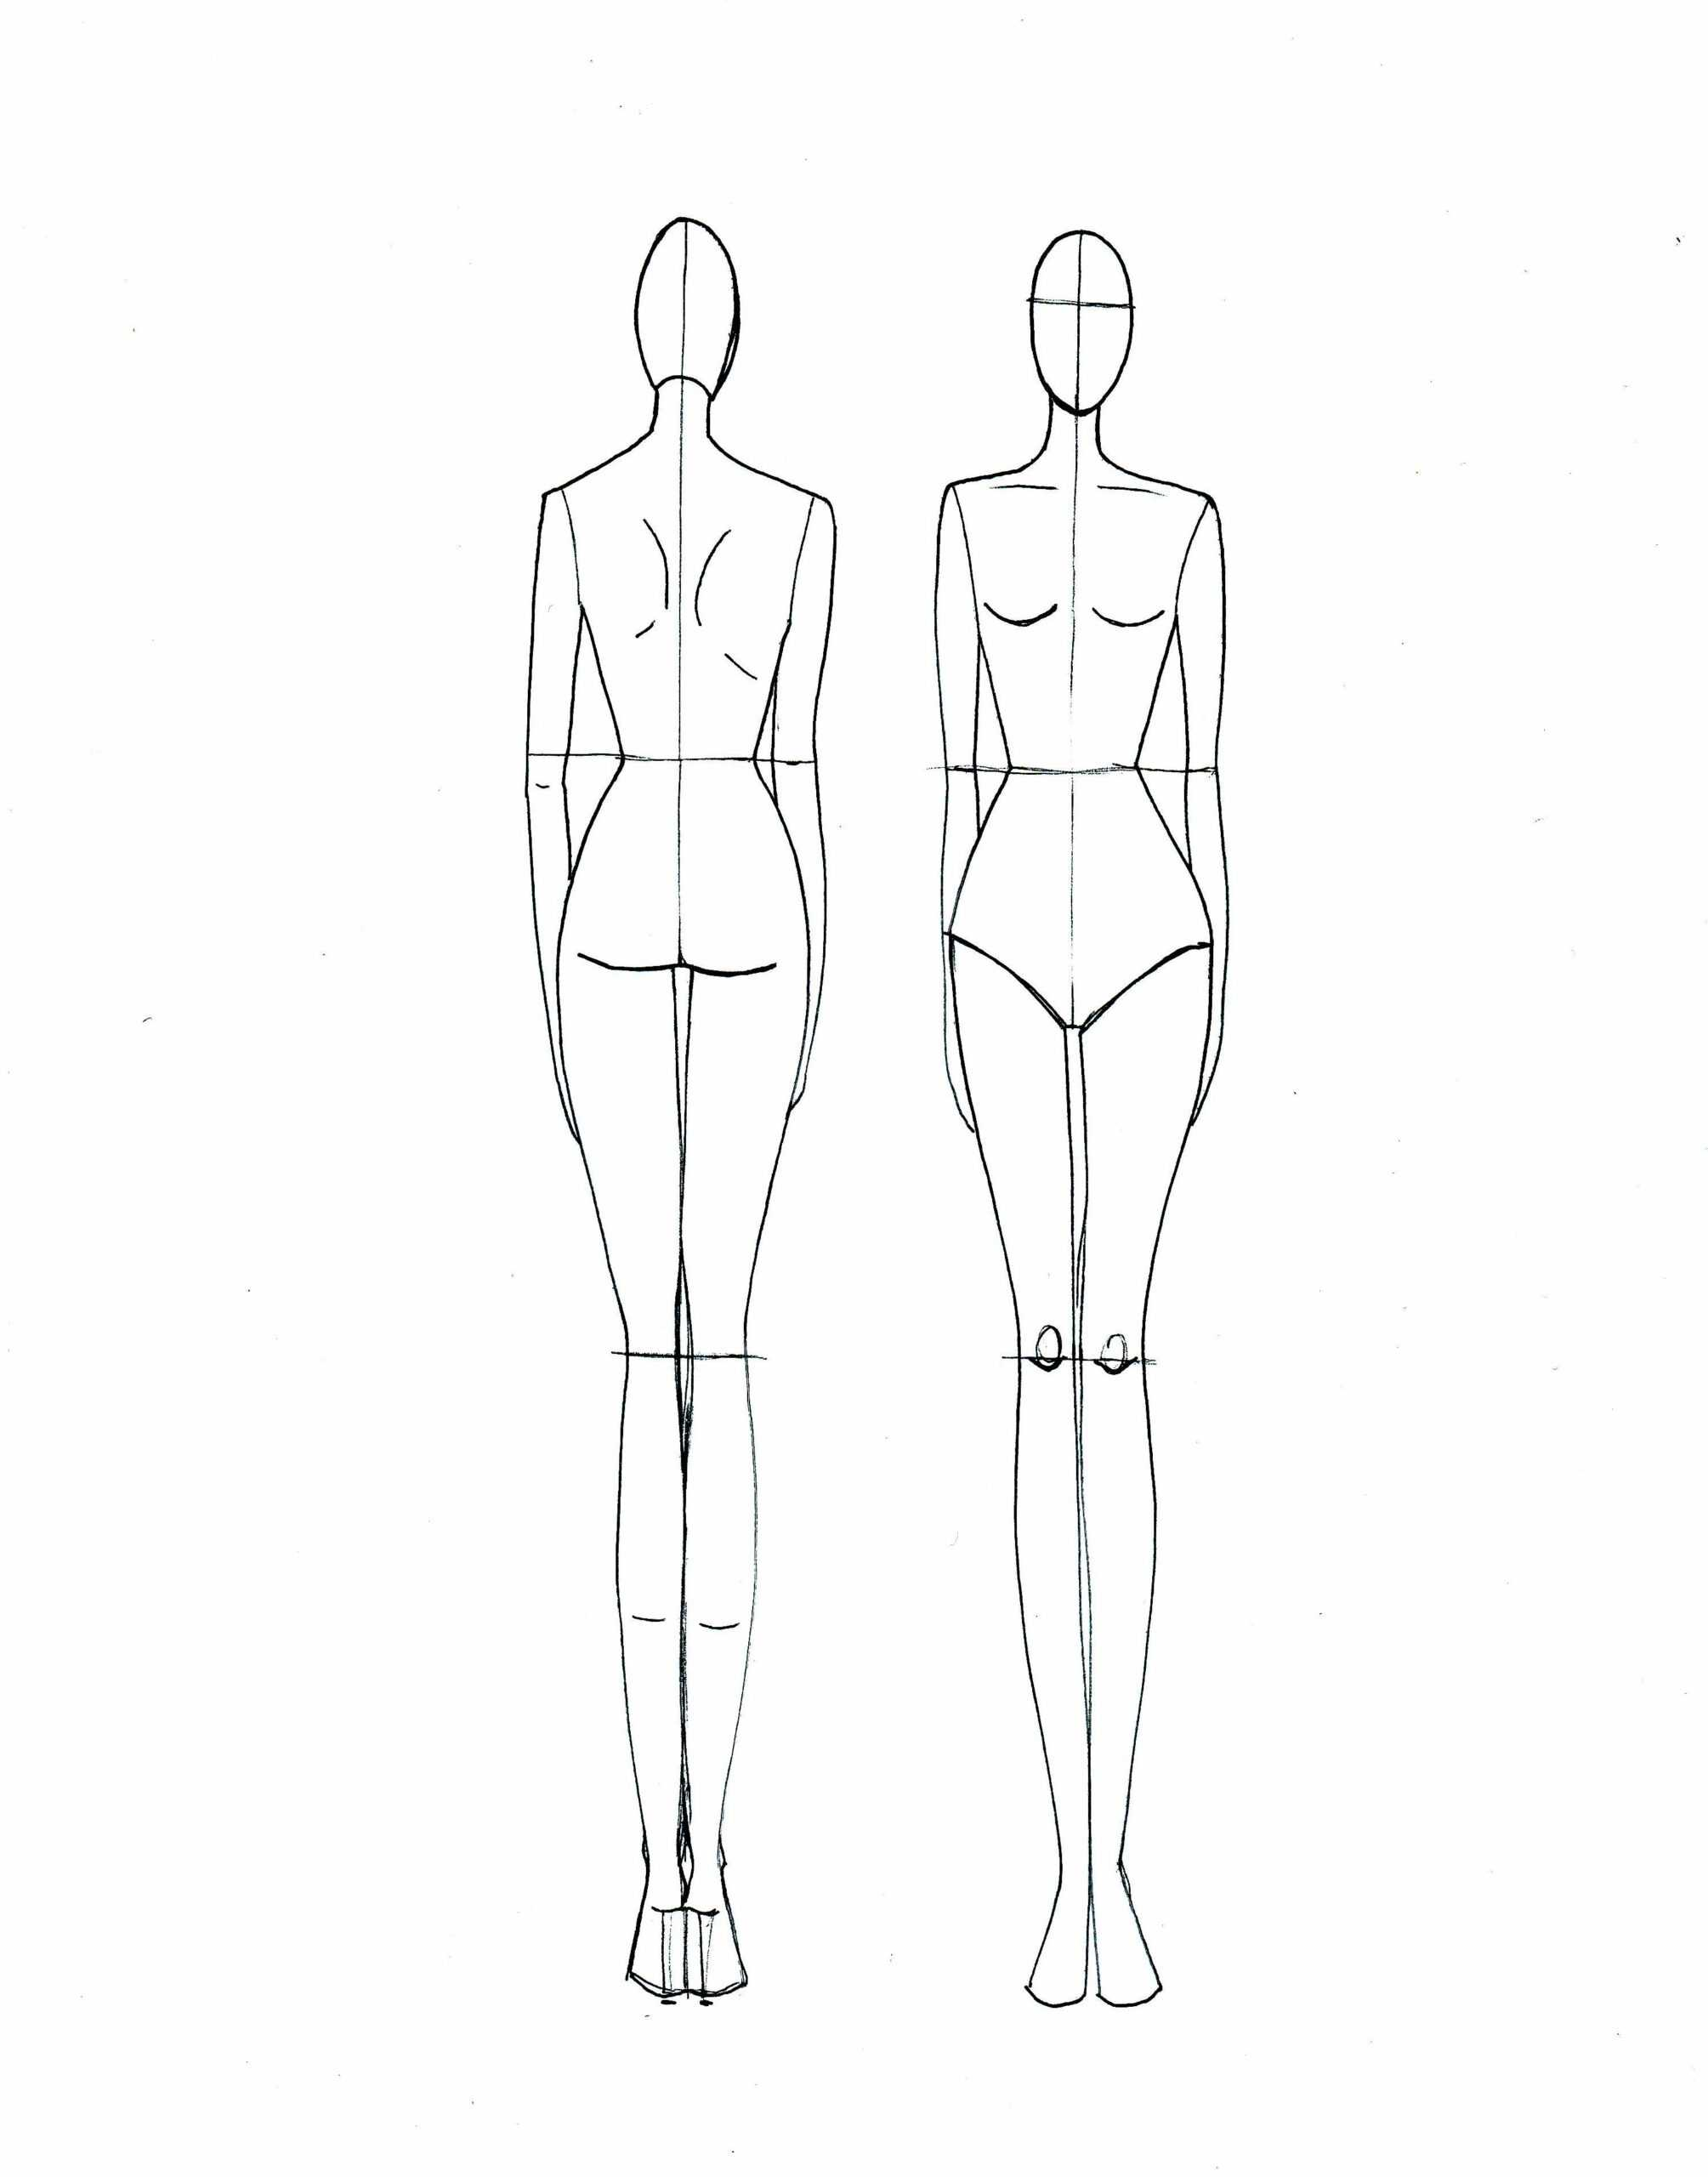 Body Sketch Template At Paintingvalley | Explore Within Blank Model Sketch Template